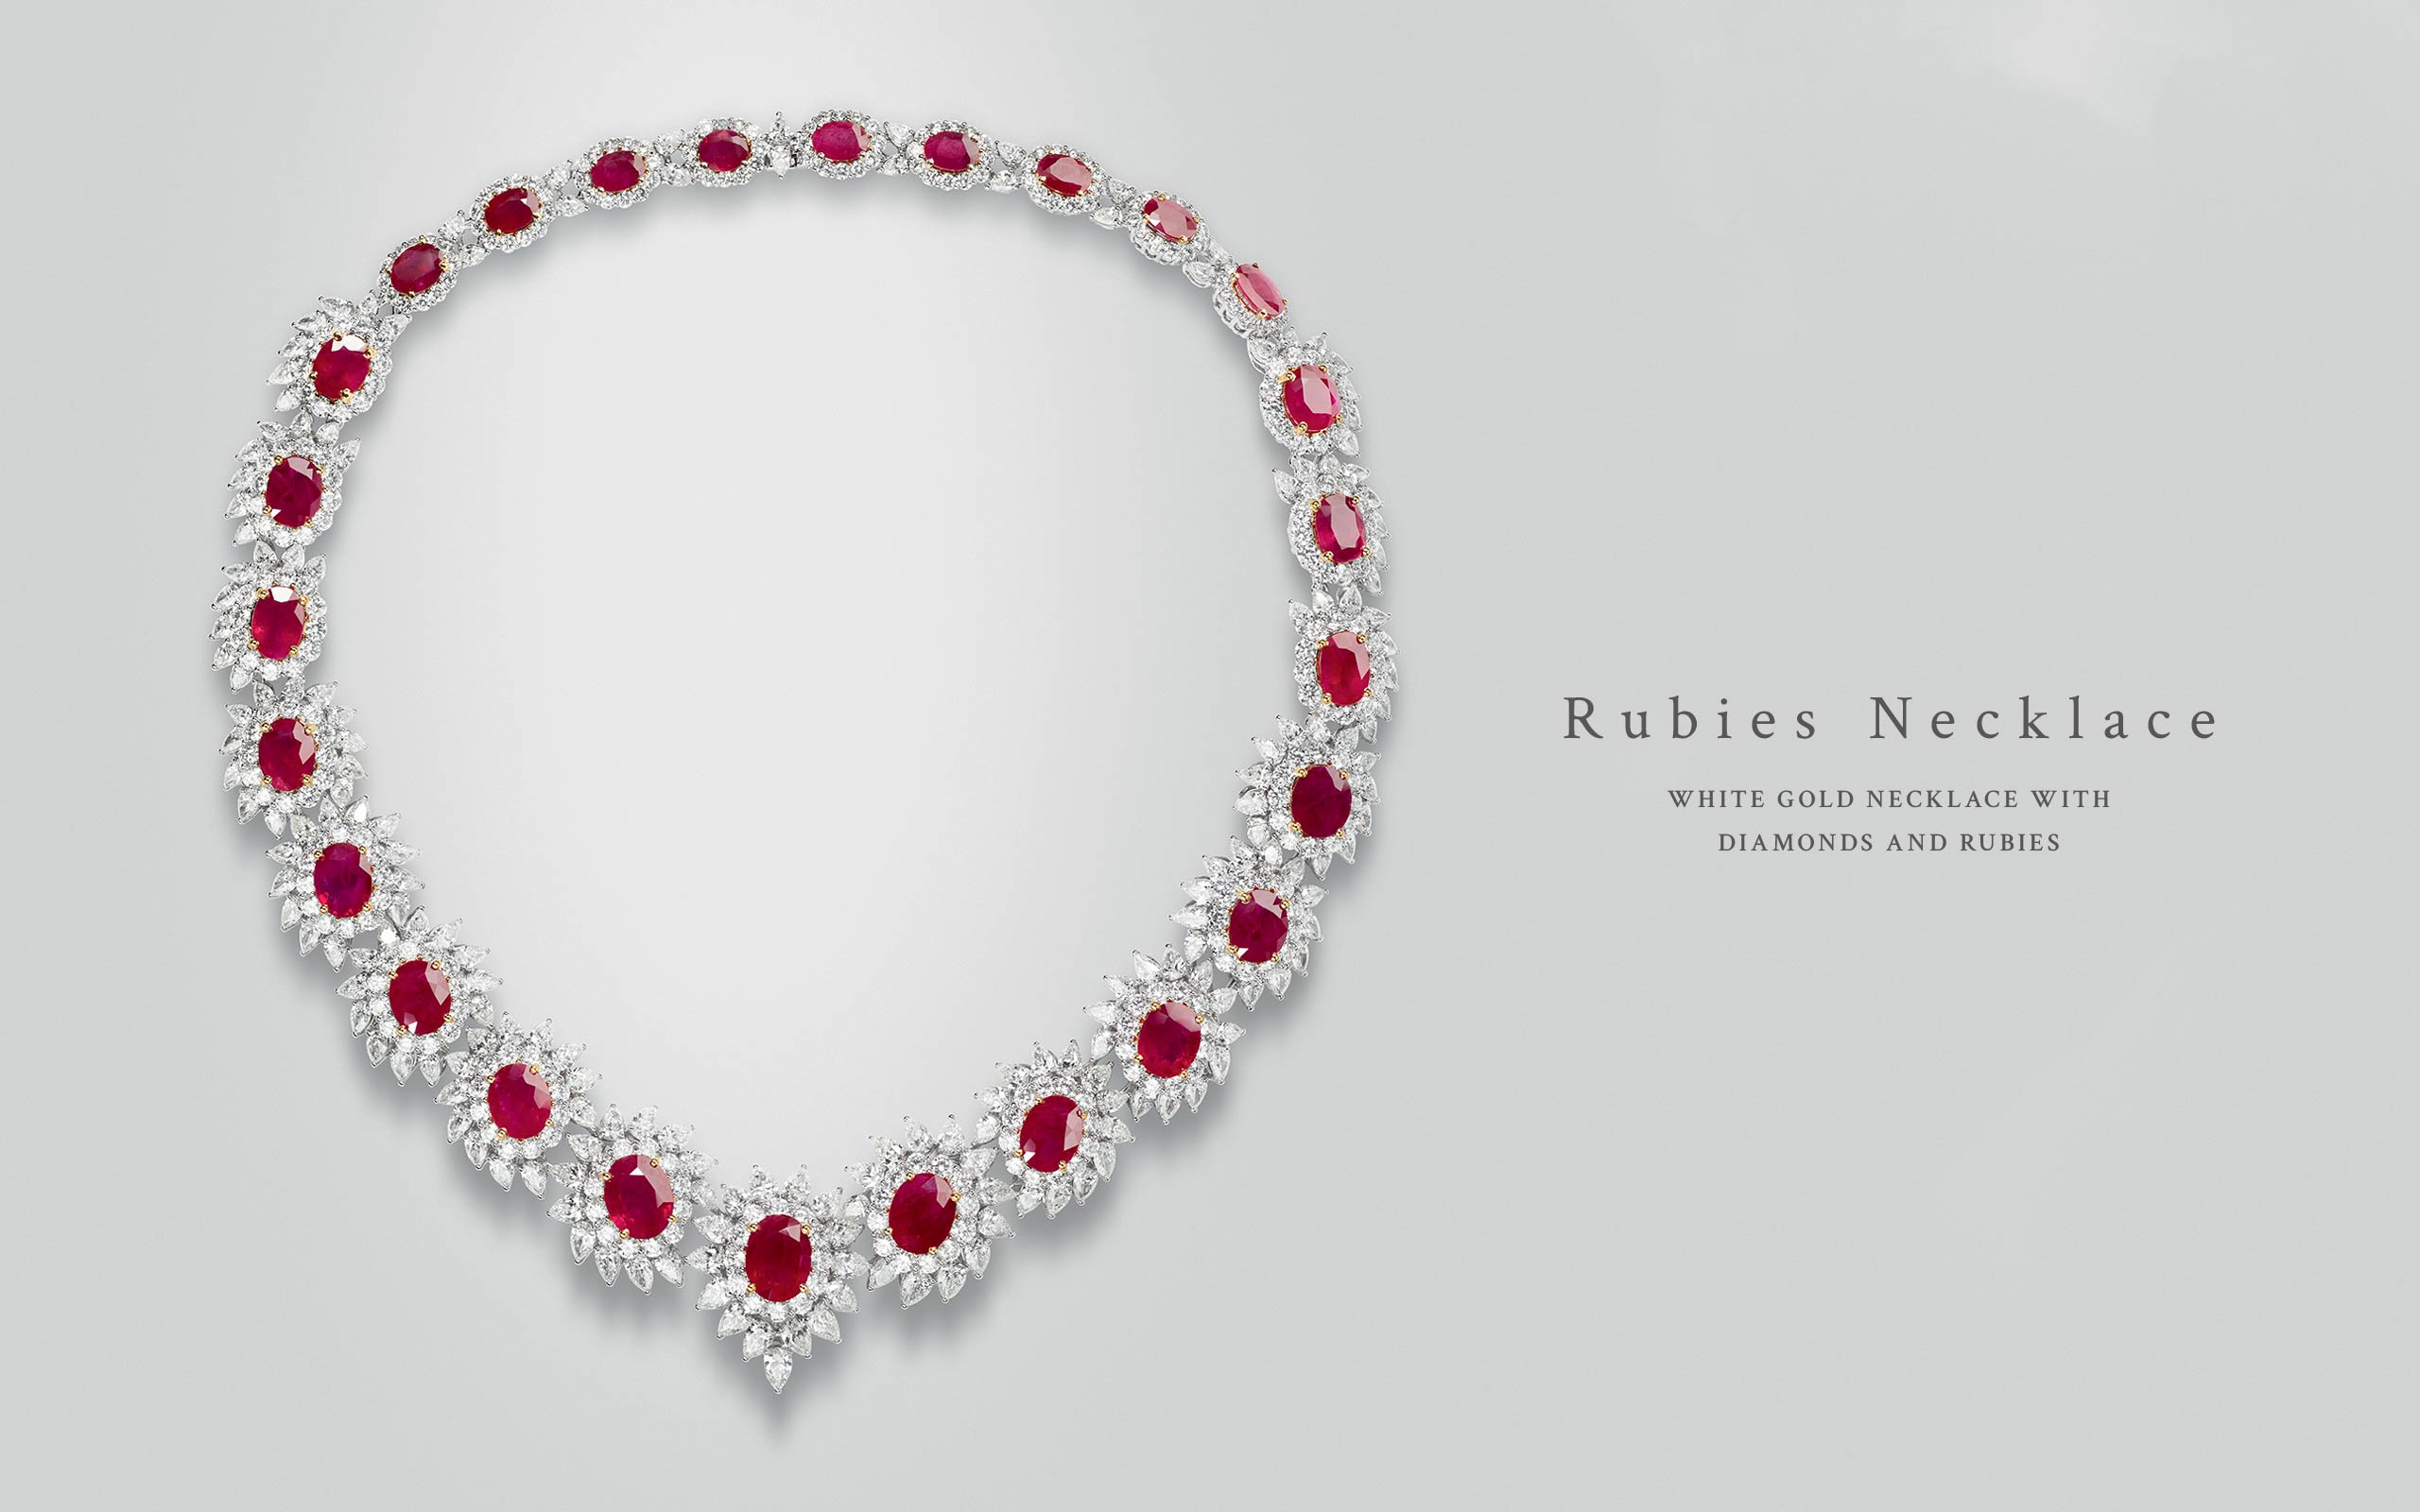 Rubies Necklace 04 | Maria Gaspari